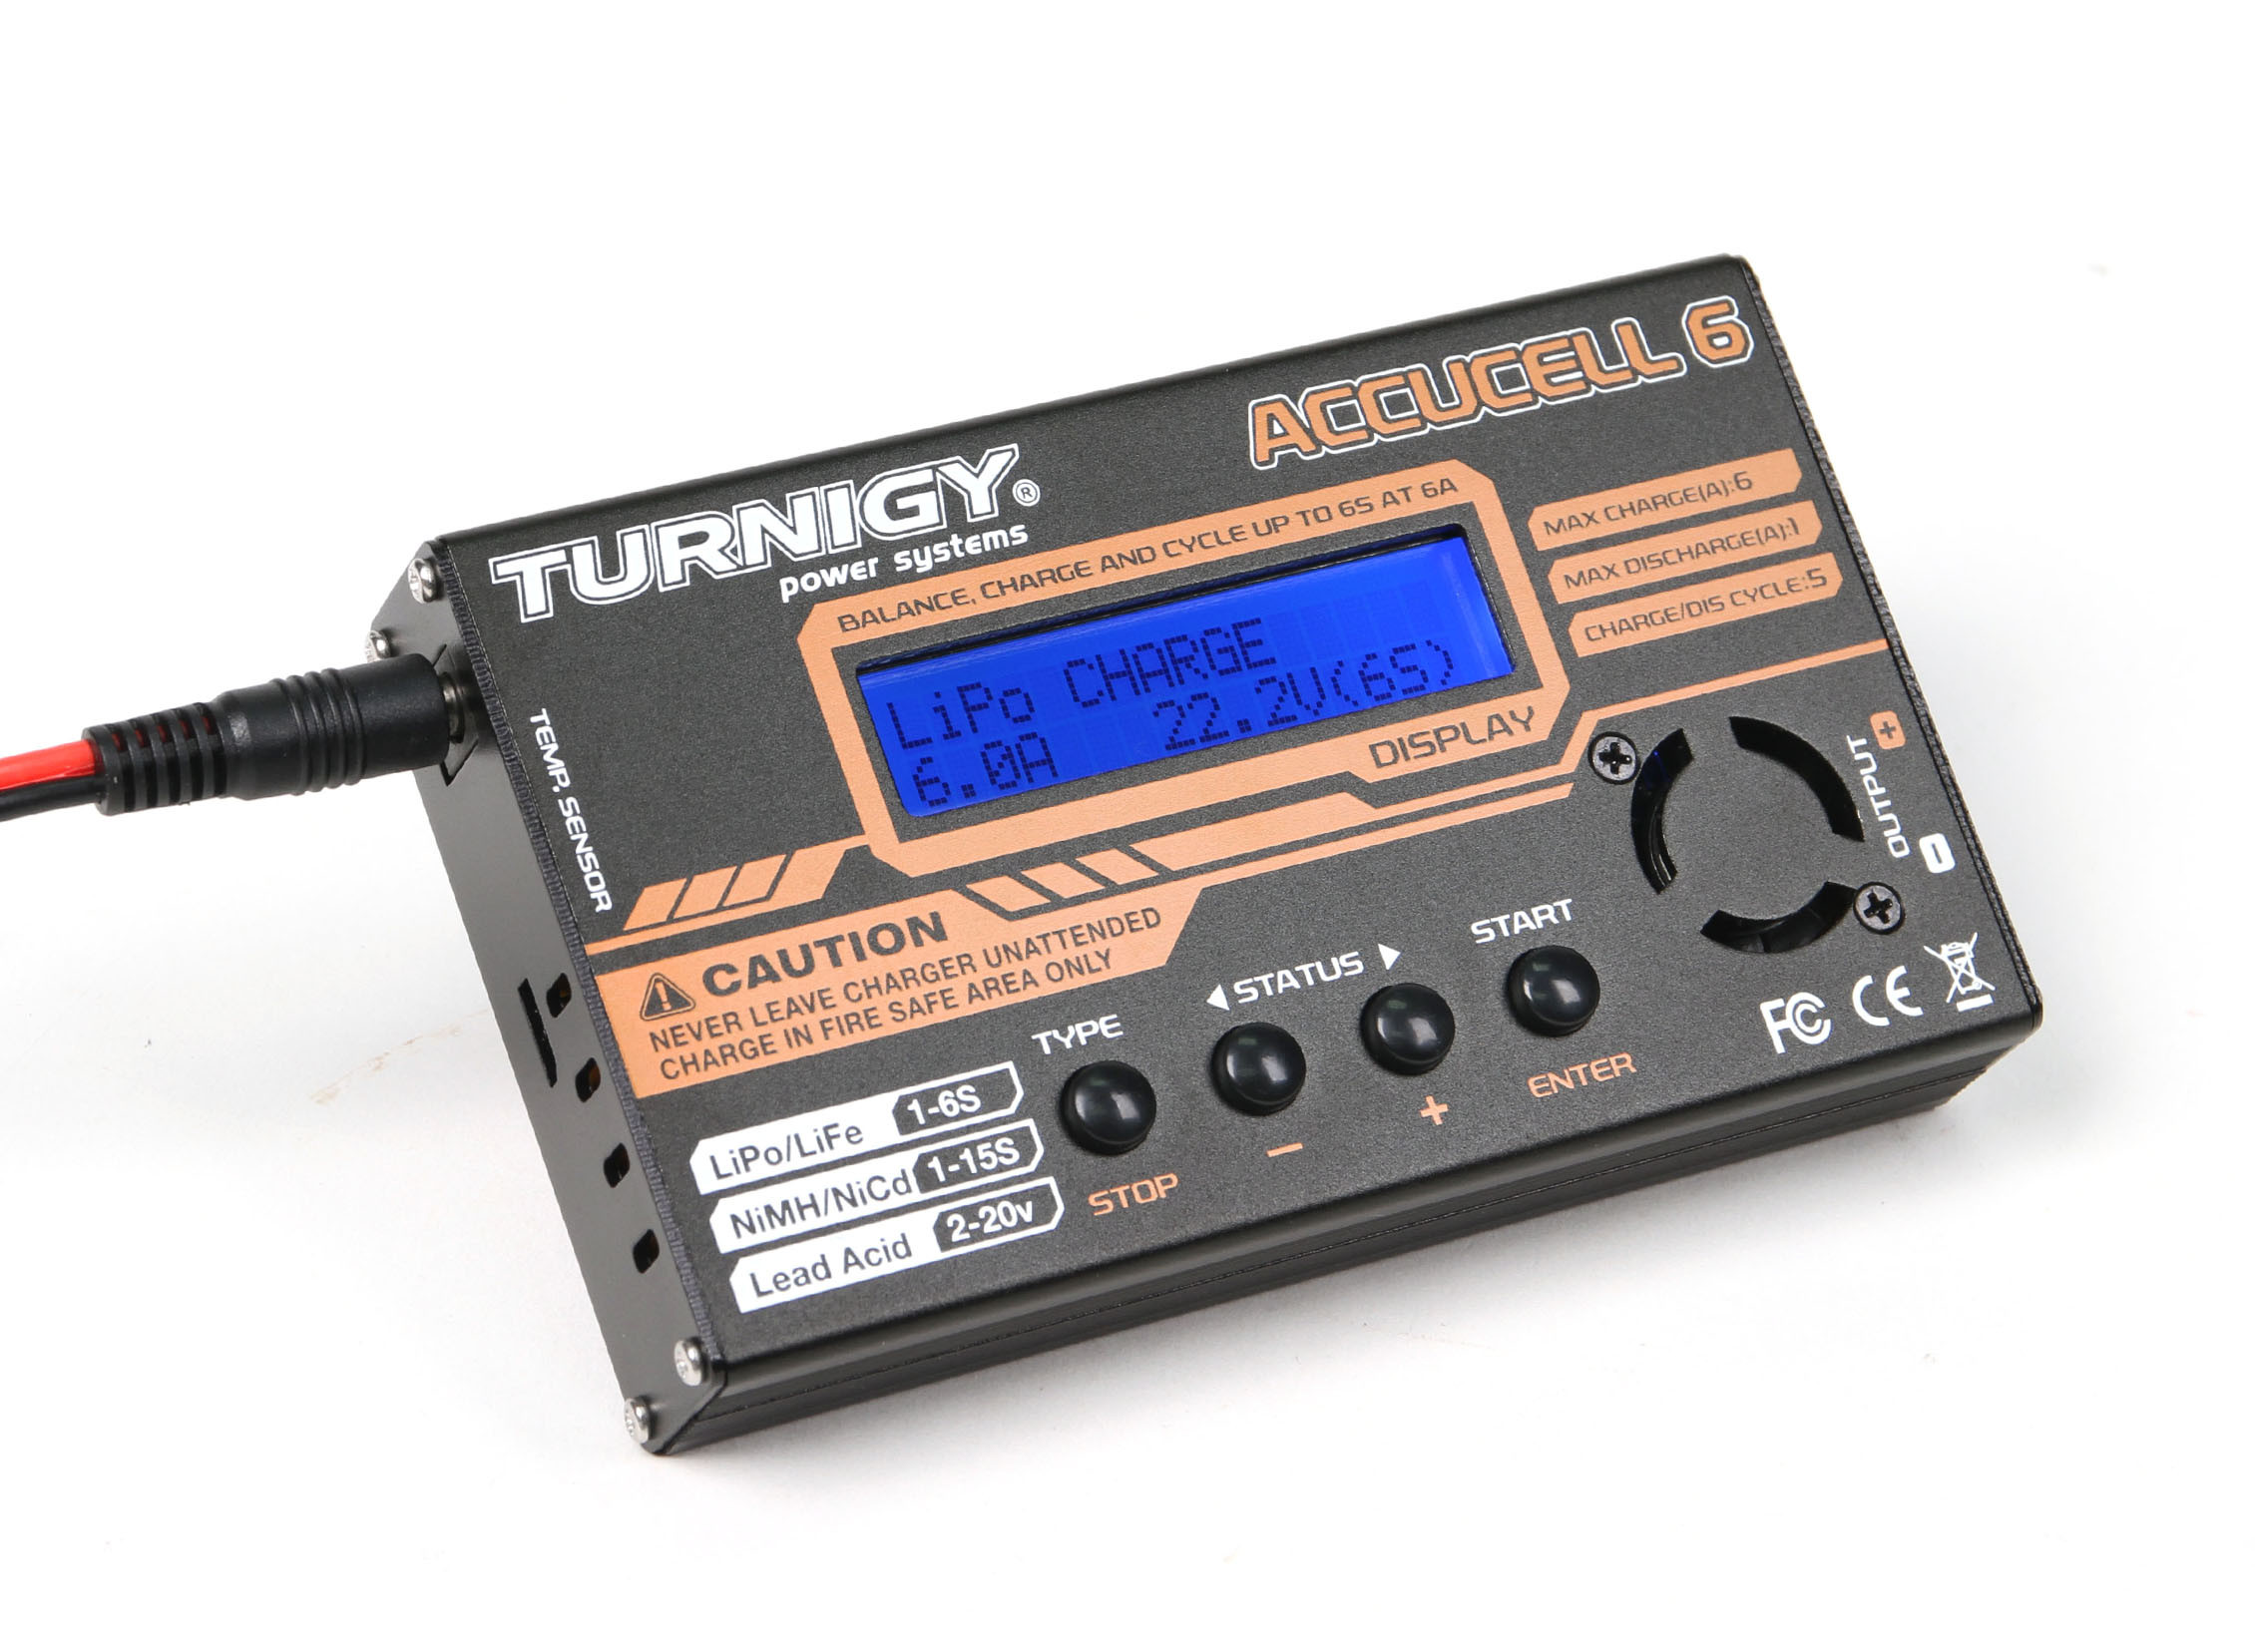 Turnigy Accucel 6 50w 6a Balancer Charger W Accessories Hobbyking Wiring Diagram